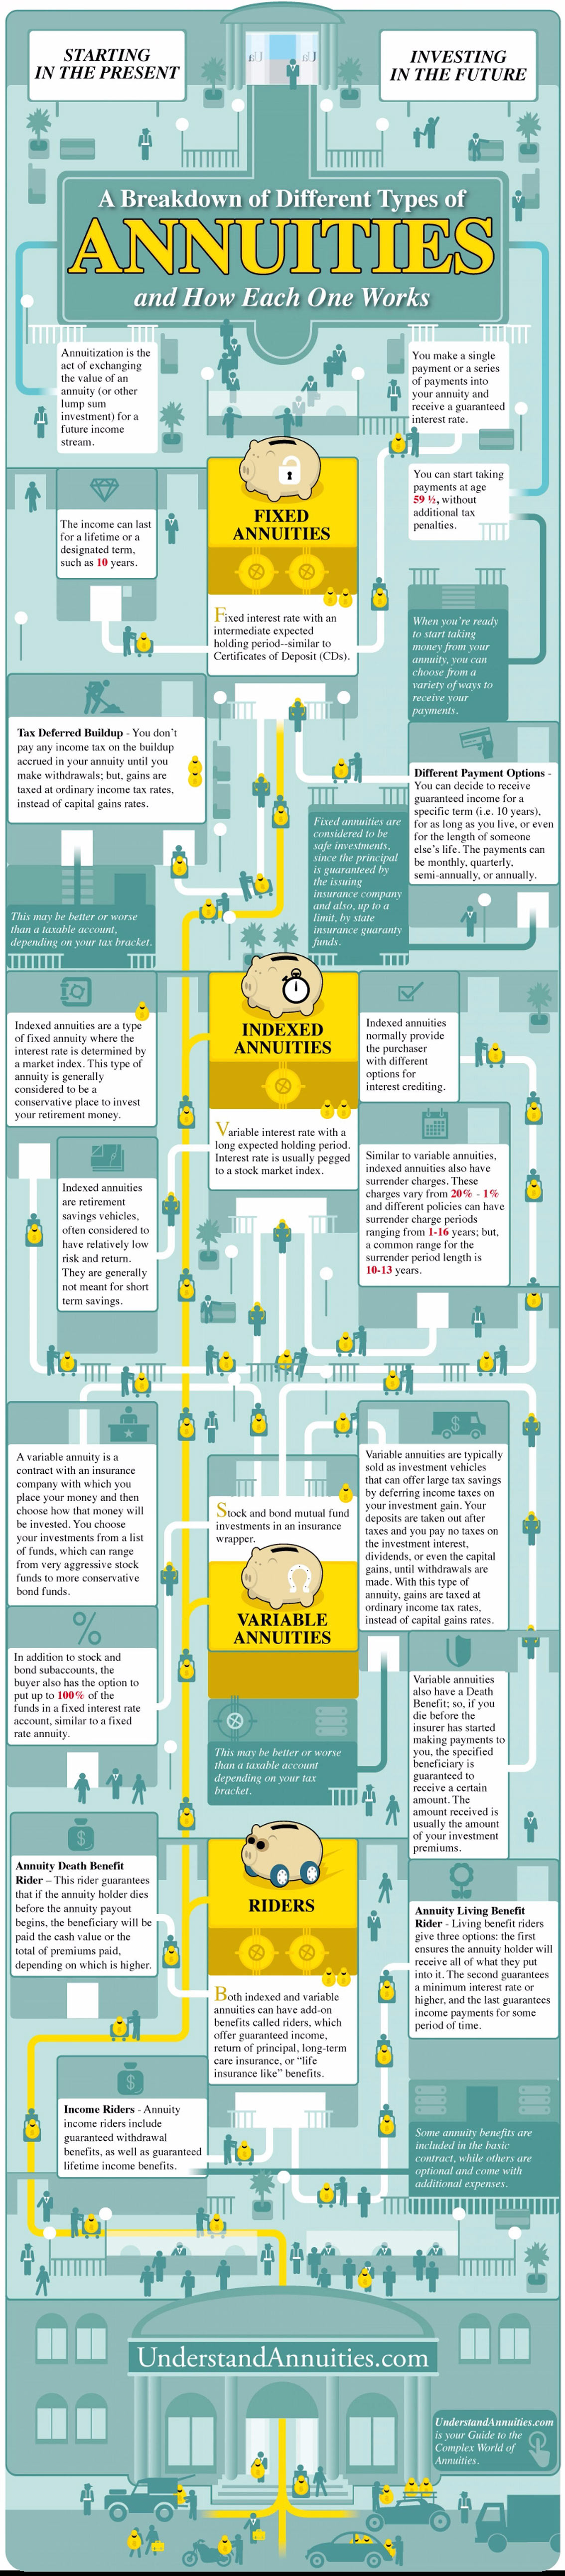 How the Different Types Of Annuities Works Infographic